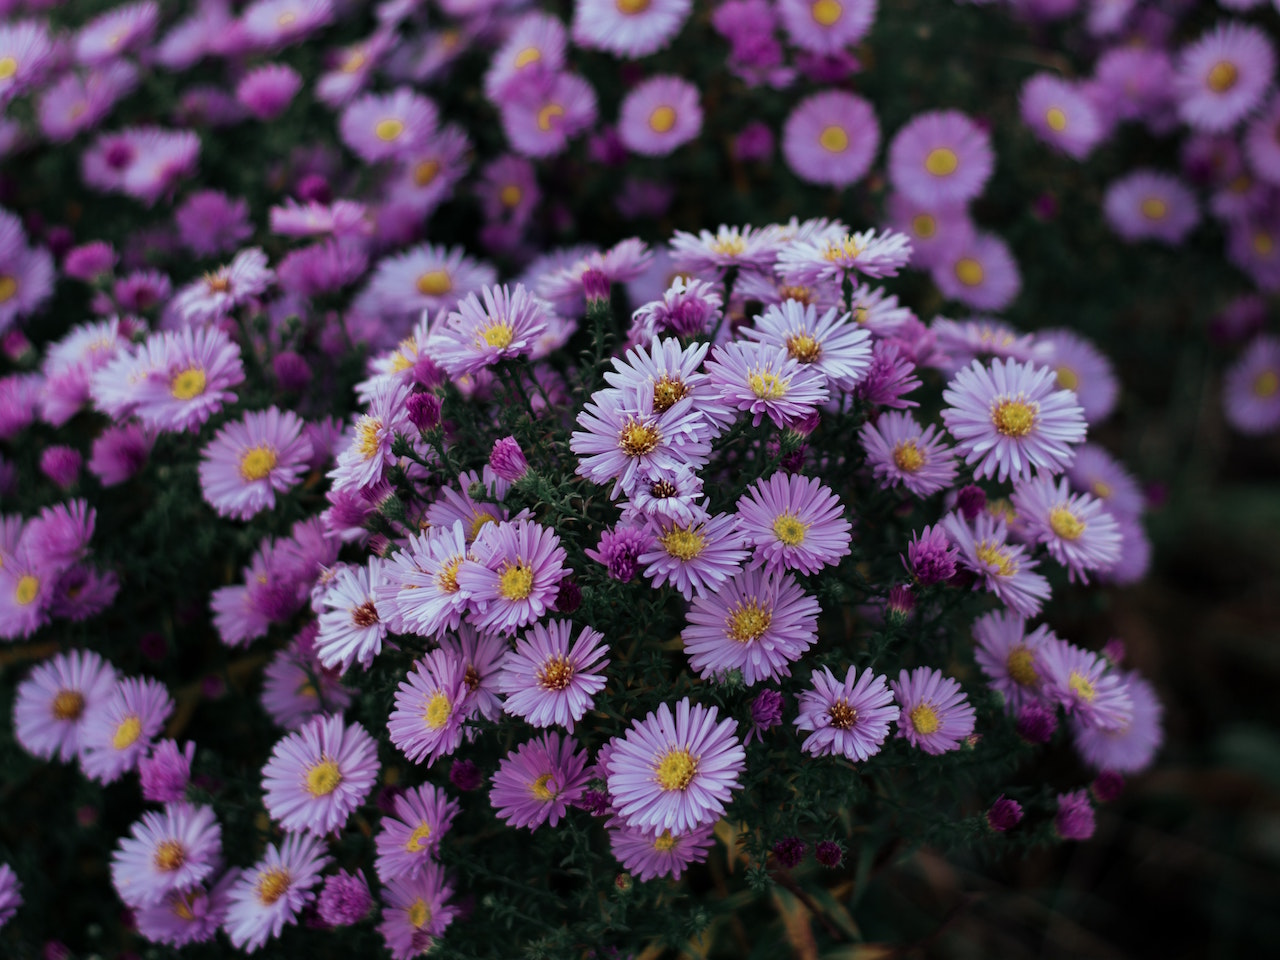 light purple Aster flowers all bunched close together in a garden